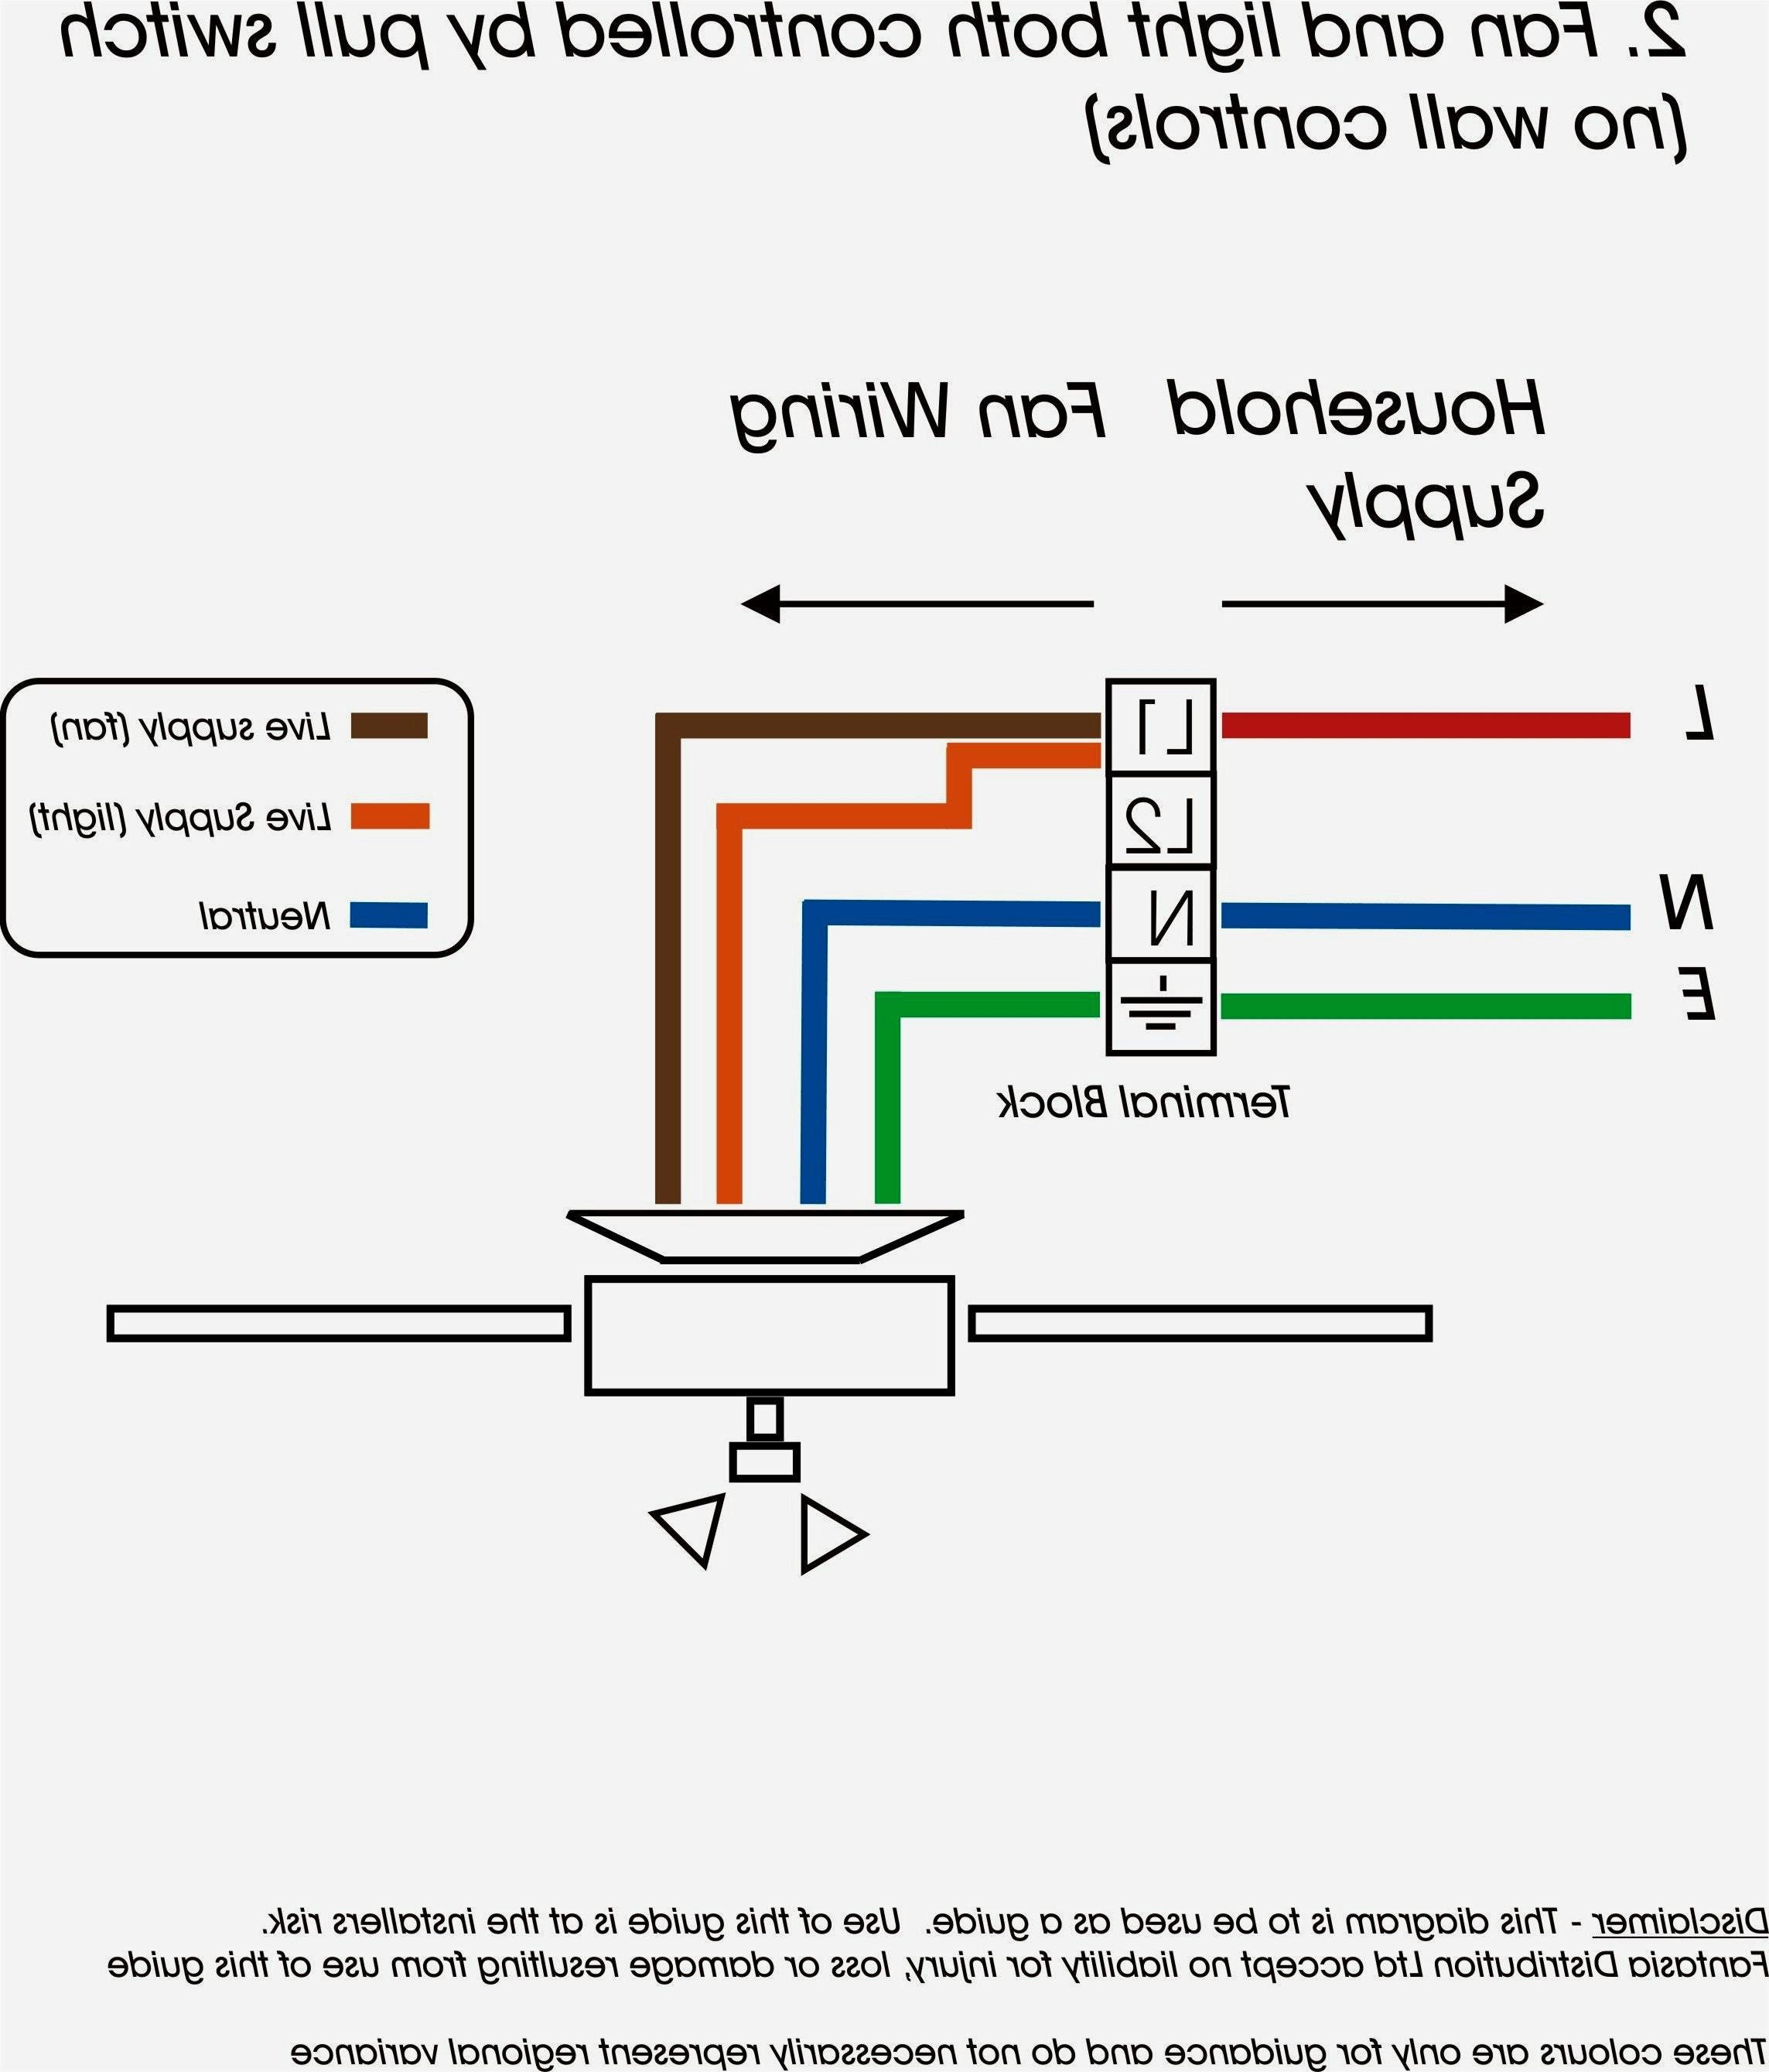 Kill Switch Wiring Diagram Car Killswitch Wiring Diagram Guitar Best Ipphil Page 20 51 Diagram Of Kill Switch Wiring Diagram Car